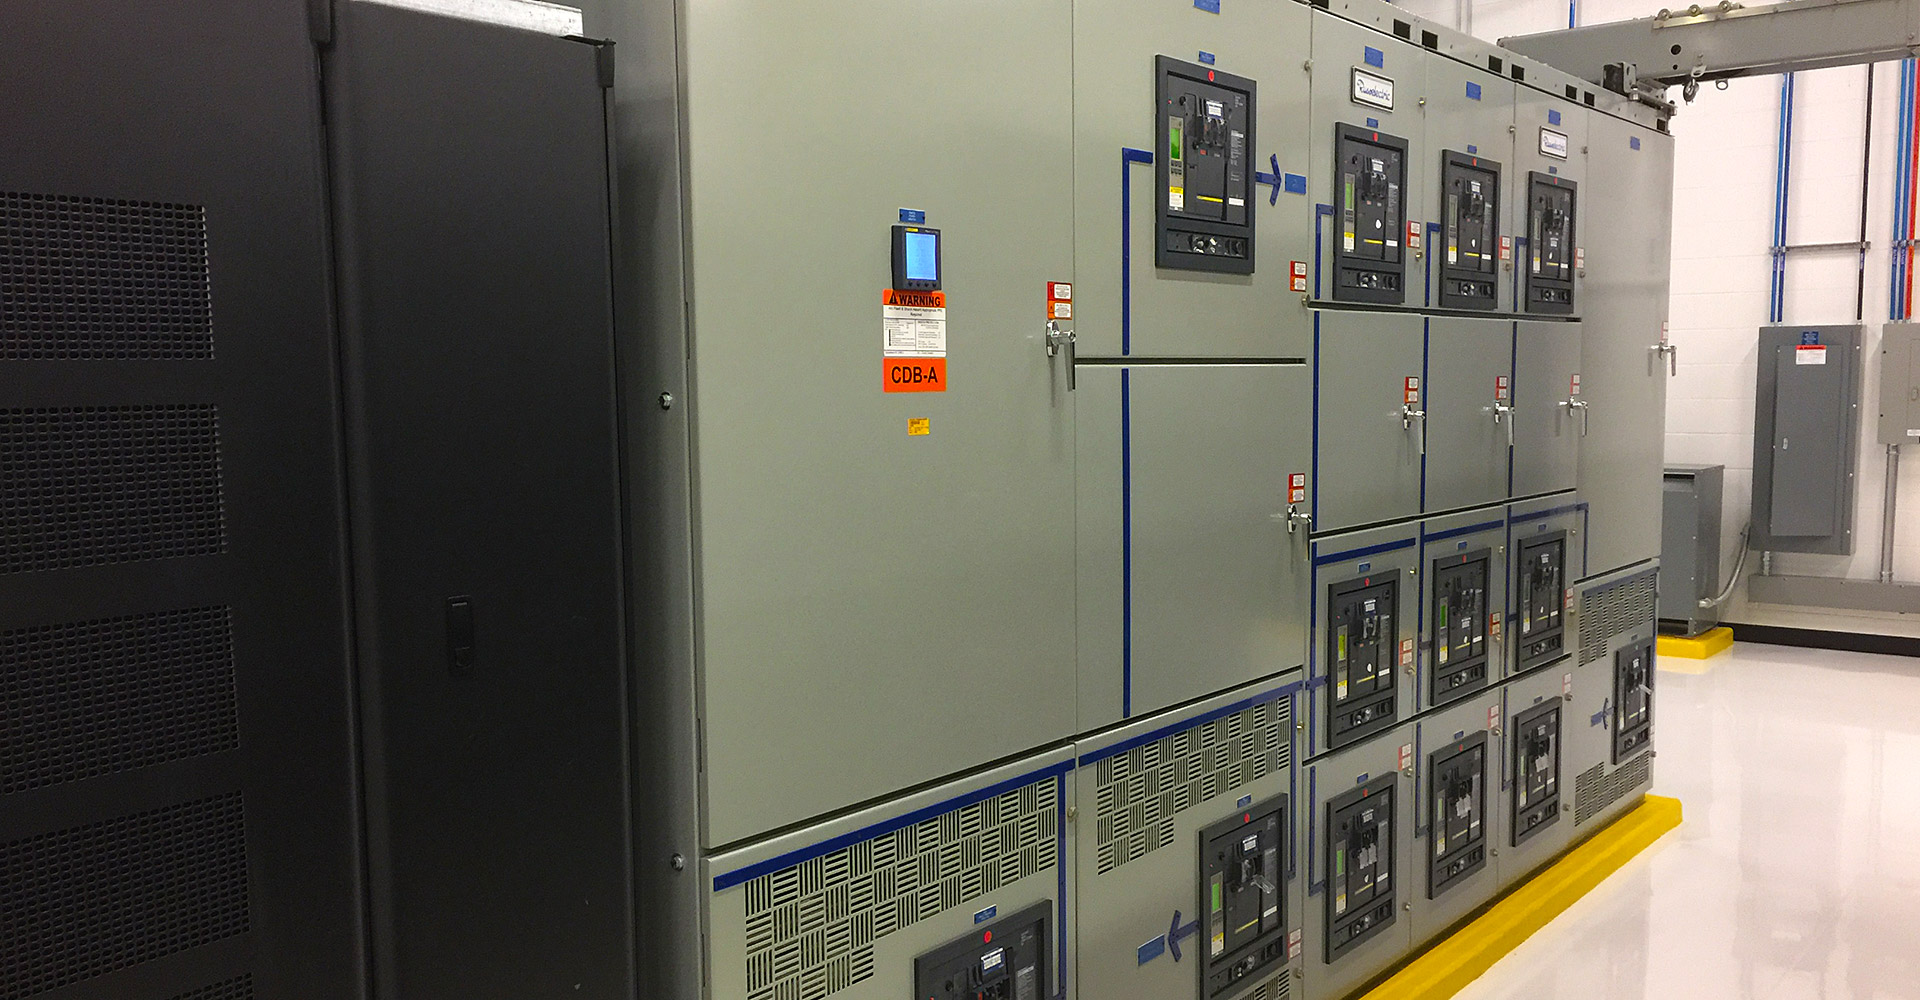 Cost-efficient and environment-friendly critical power solutions